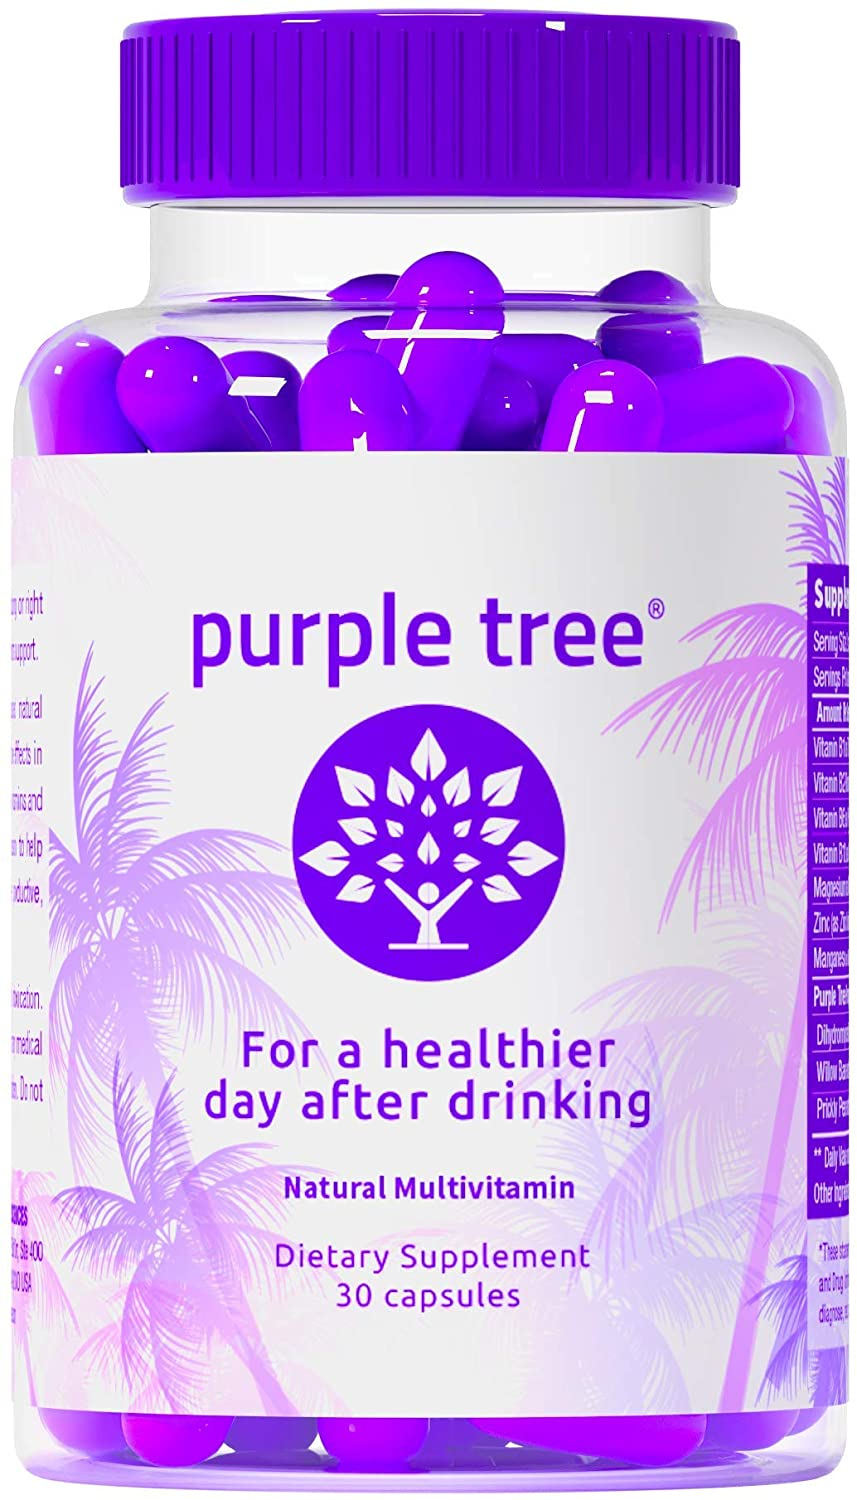 A bottle of Purple Tree pills